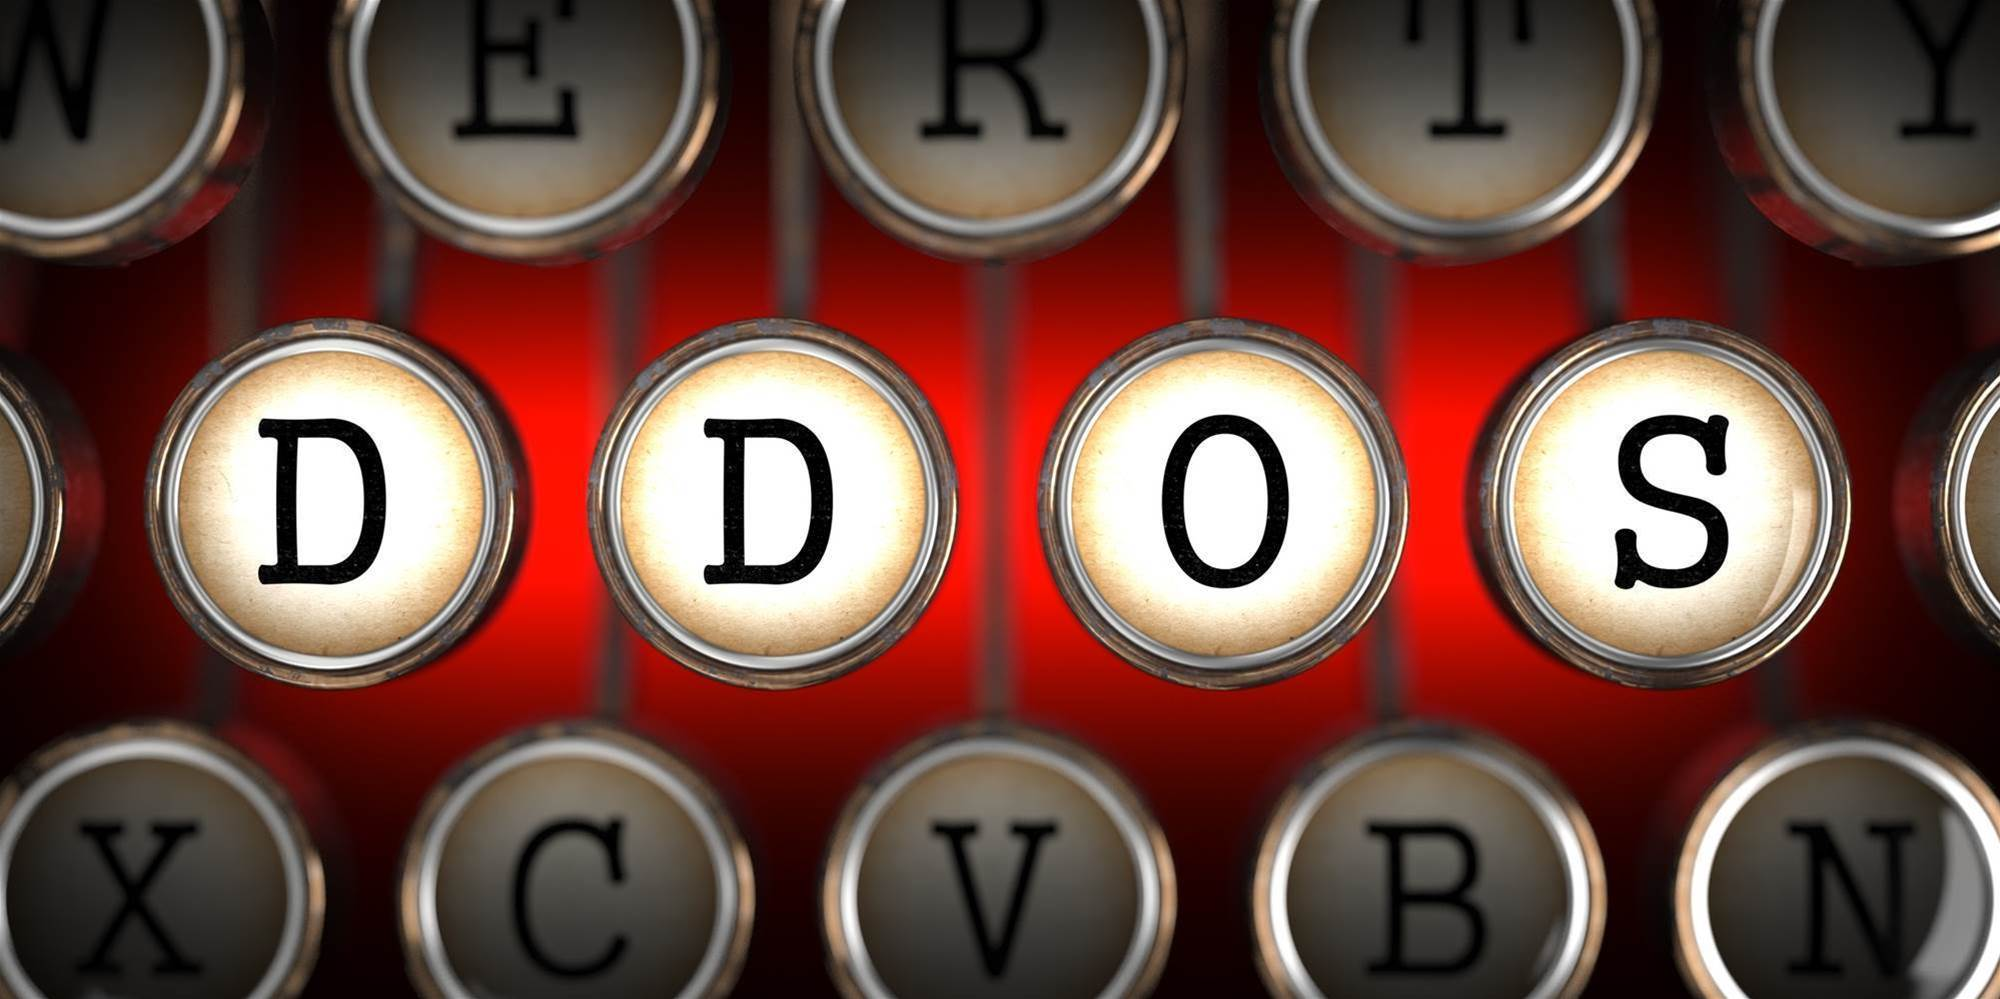 DDoS attacks shorter and more frequent: 80% now take less than an hour